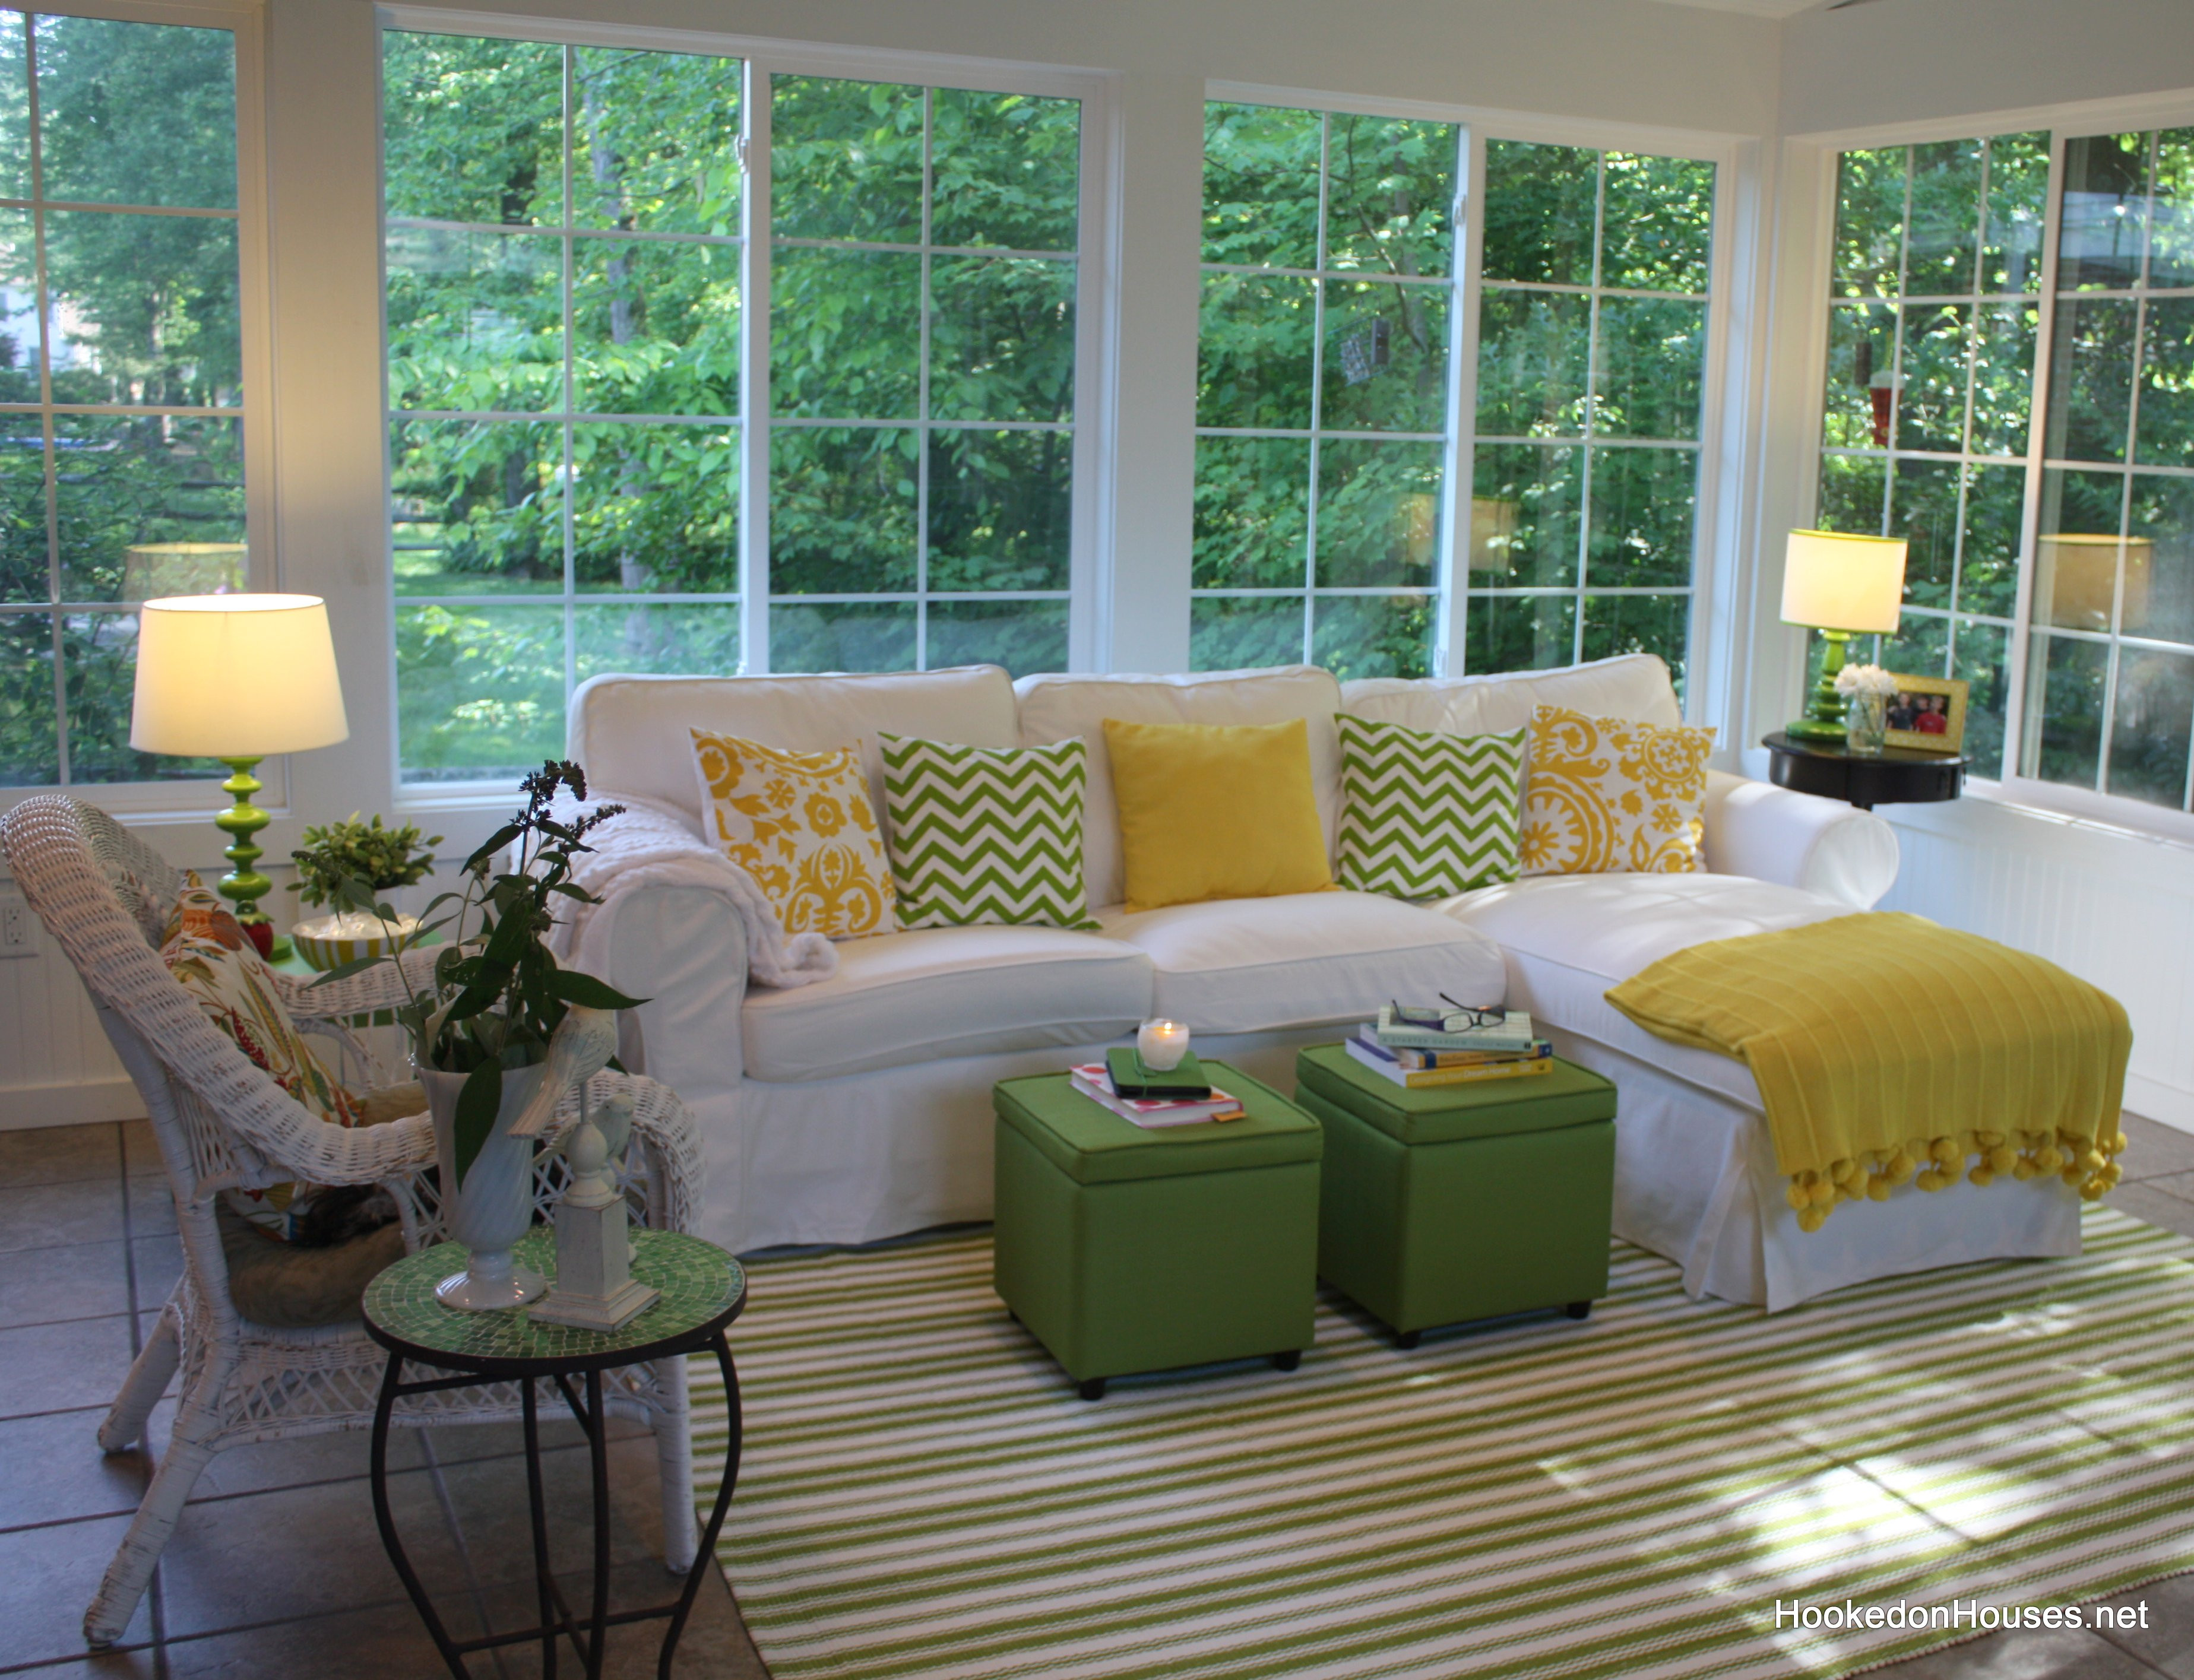 Best ideas about Sunroom Furniture Ideas . Save or Pin Ektorp sofa sunroom 2 Hooked on Houses Now.